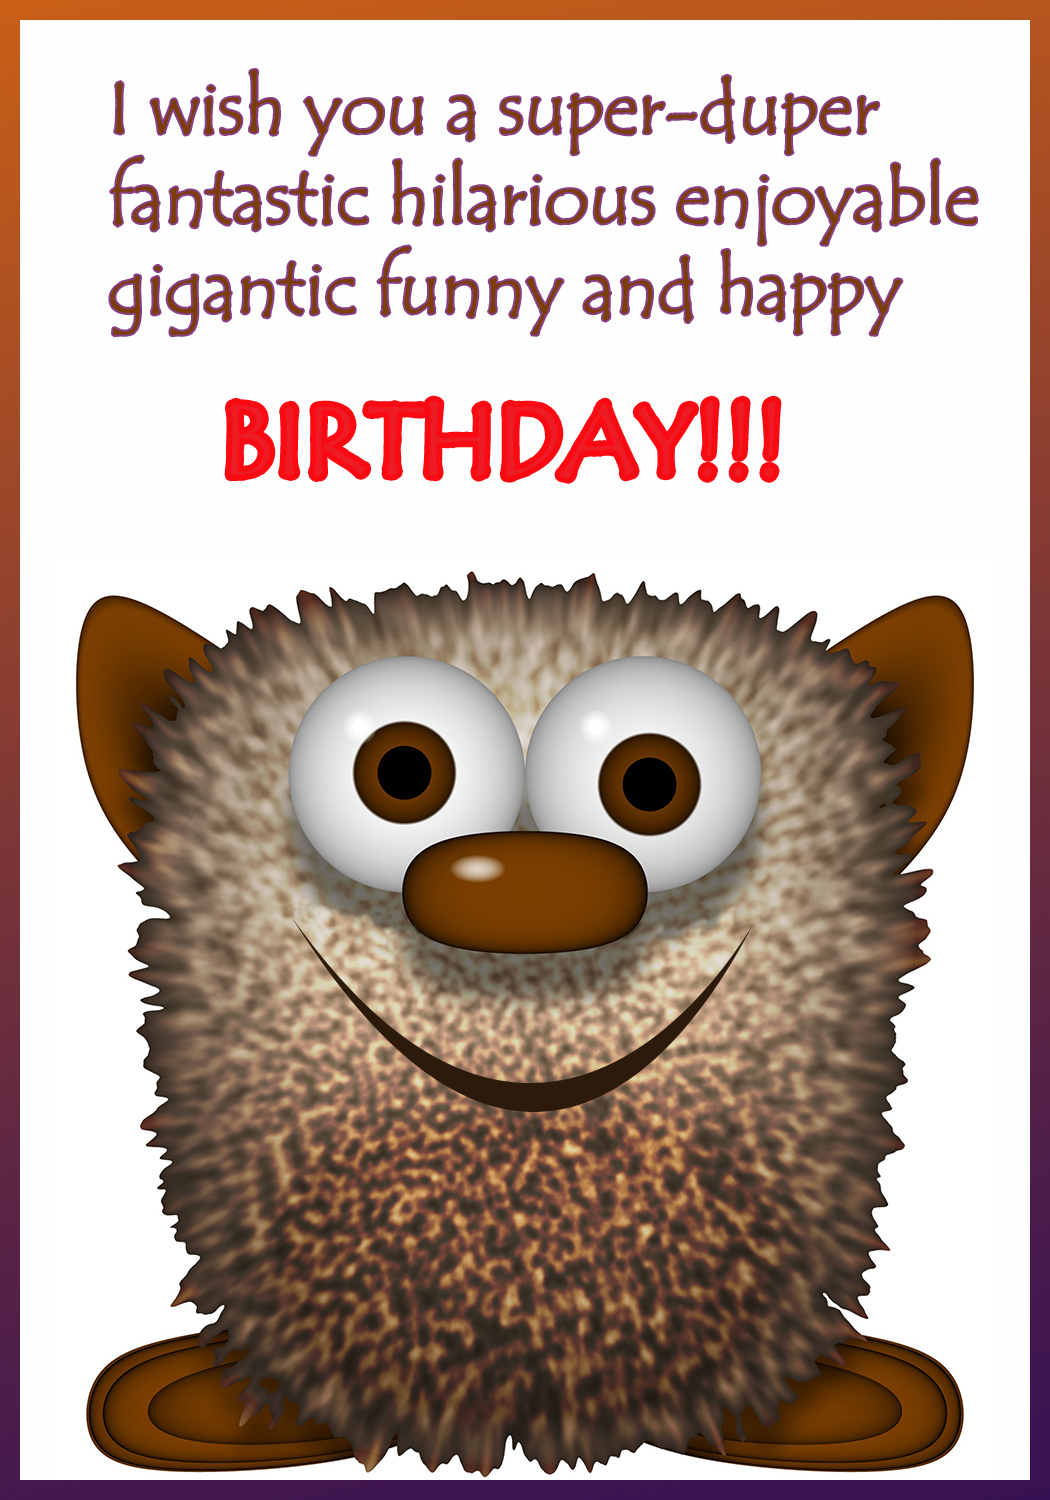 Funny printable birthday cards kristyandbryce Gallery